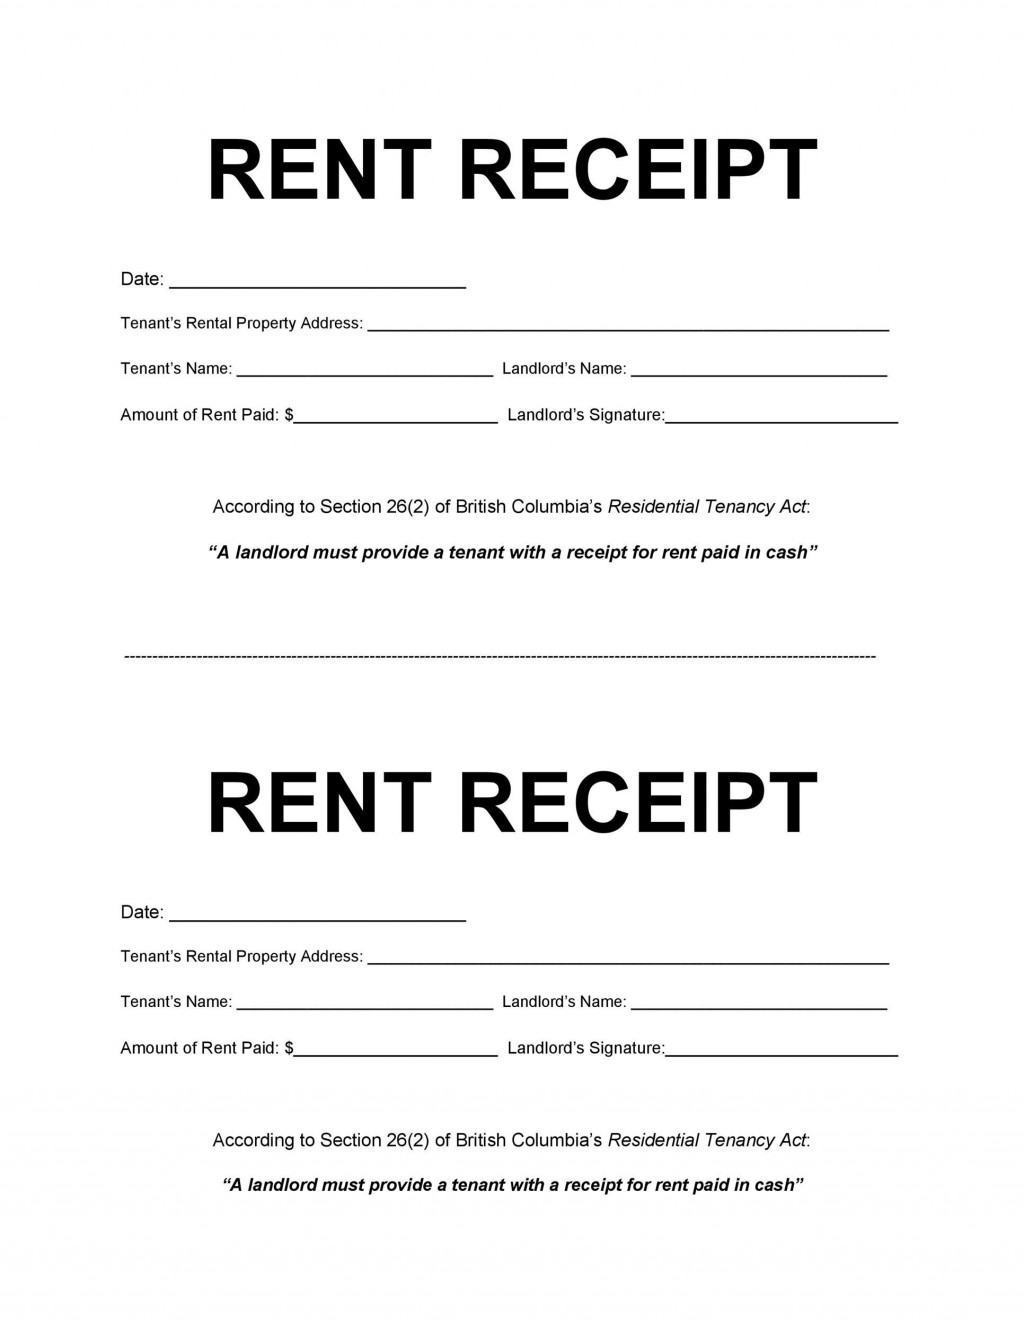 008 Rare Rent Payment Receipt Template Image  Excel FreeLarge